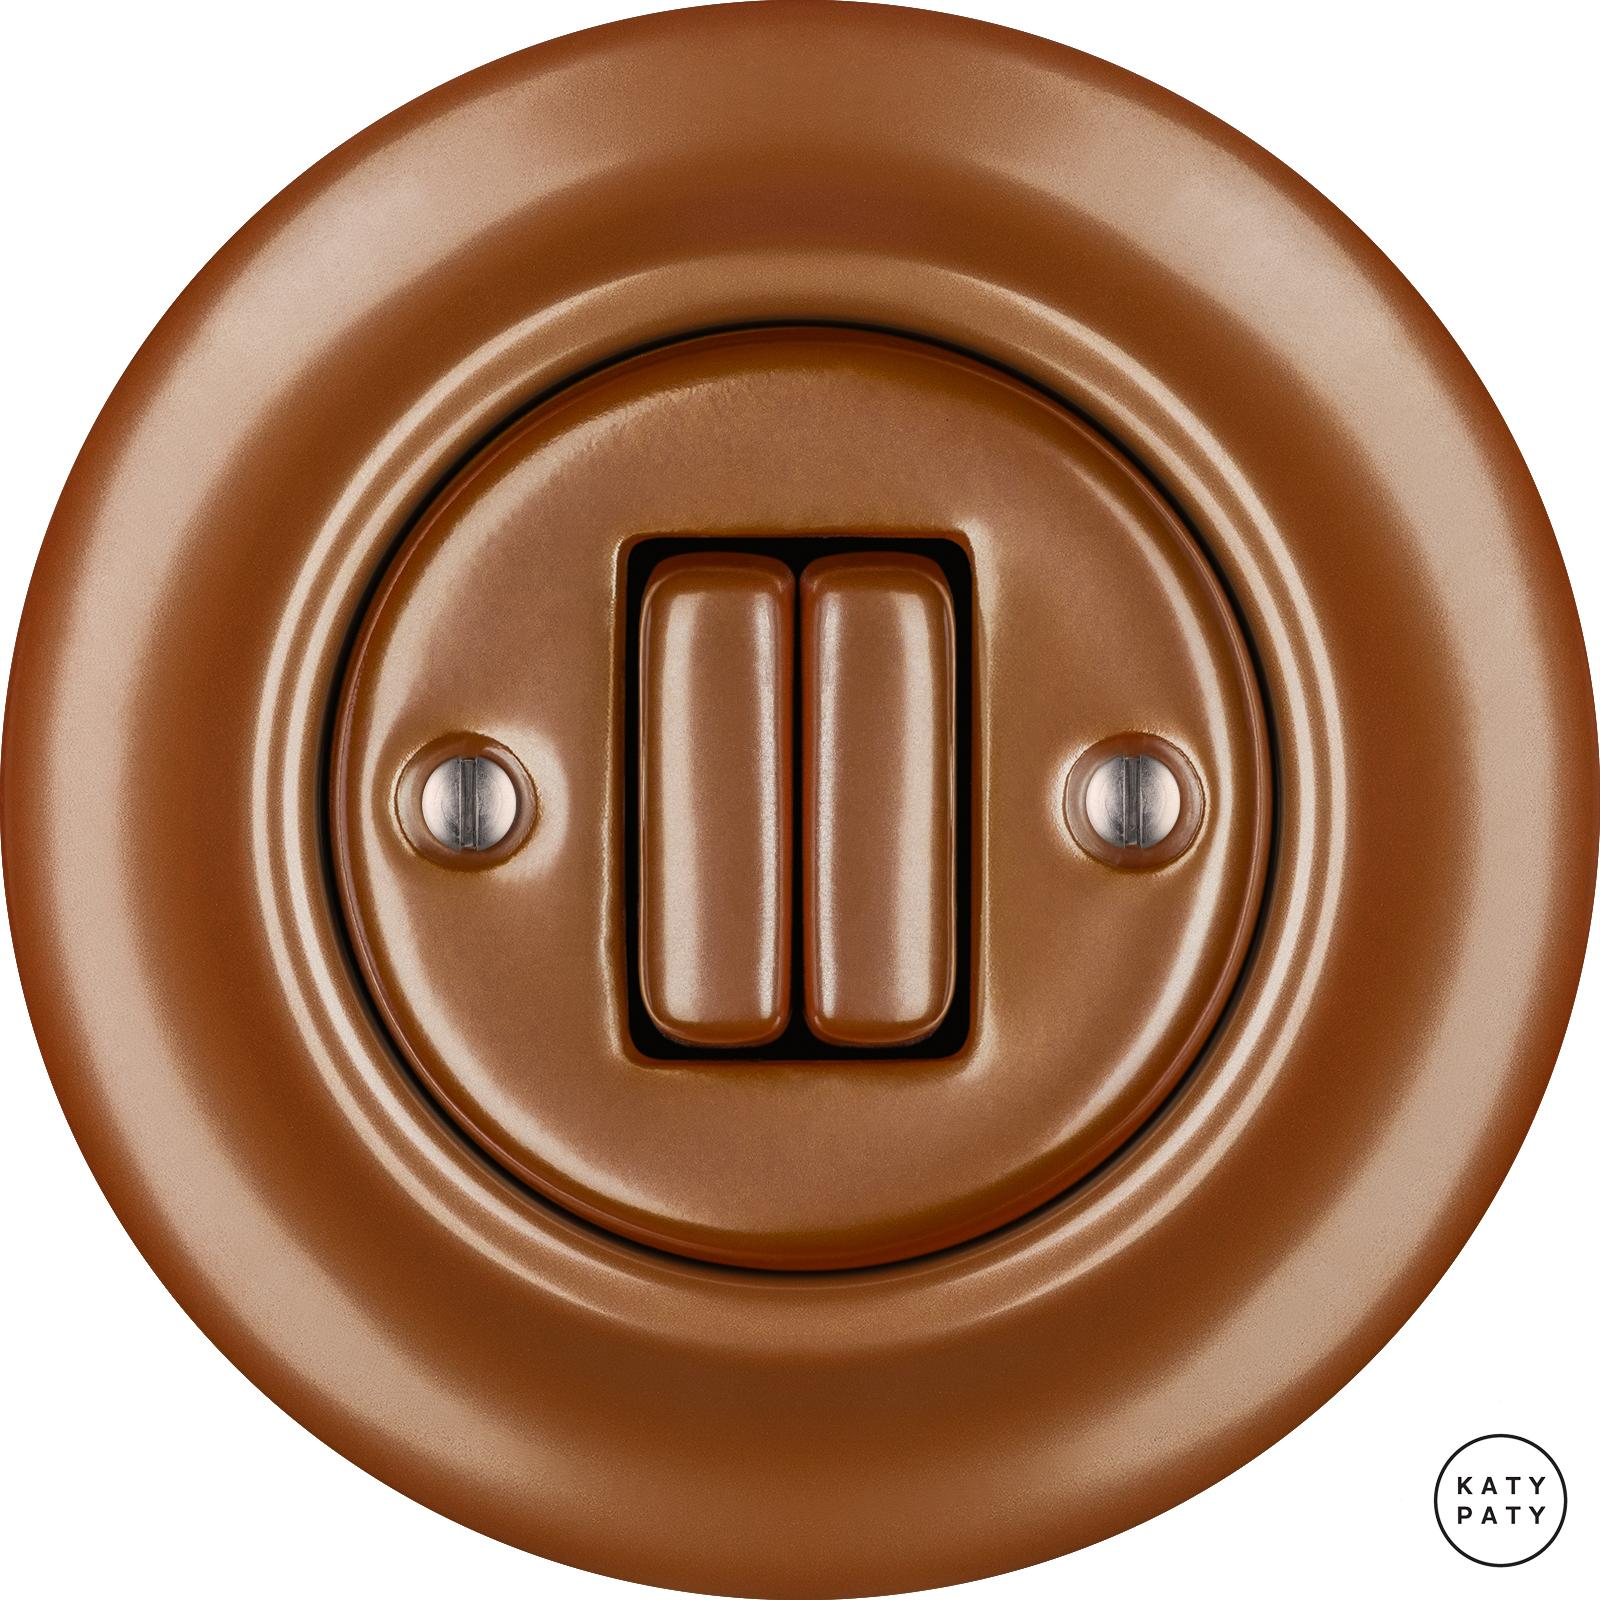 Porcelain switches - a double key ()  - CUPRUM | Katy Paty